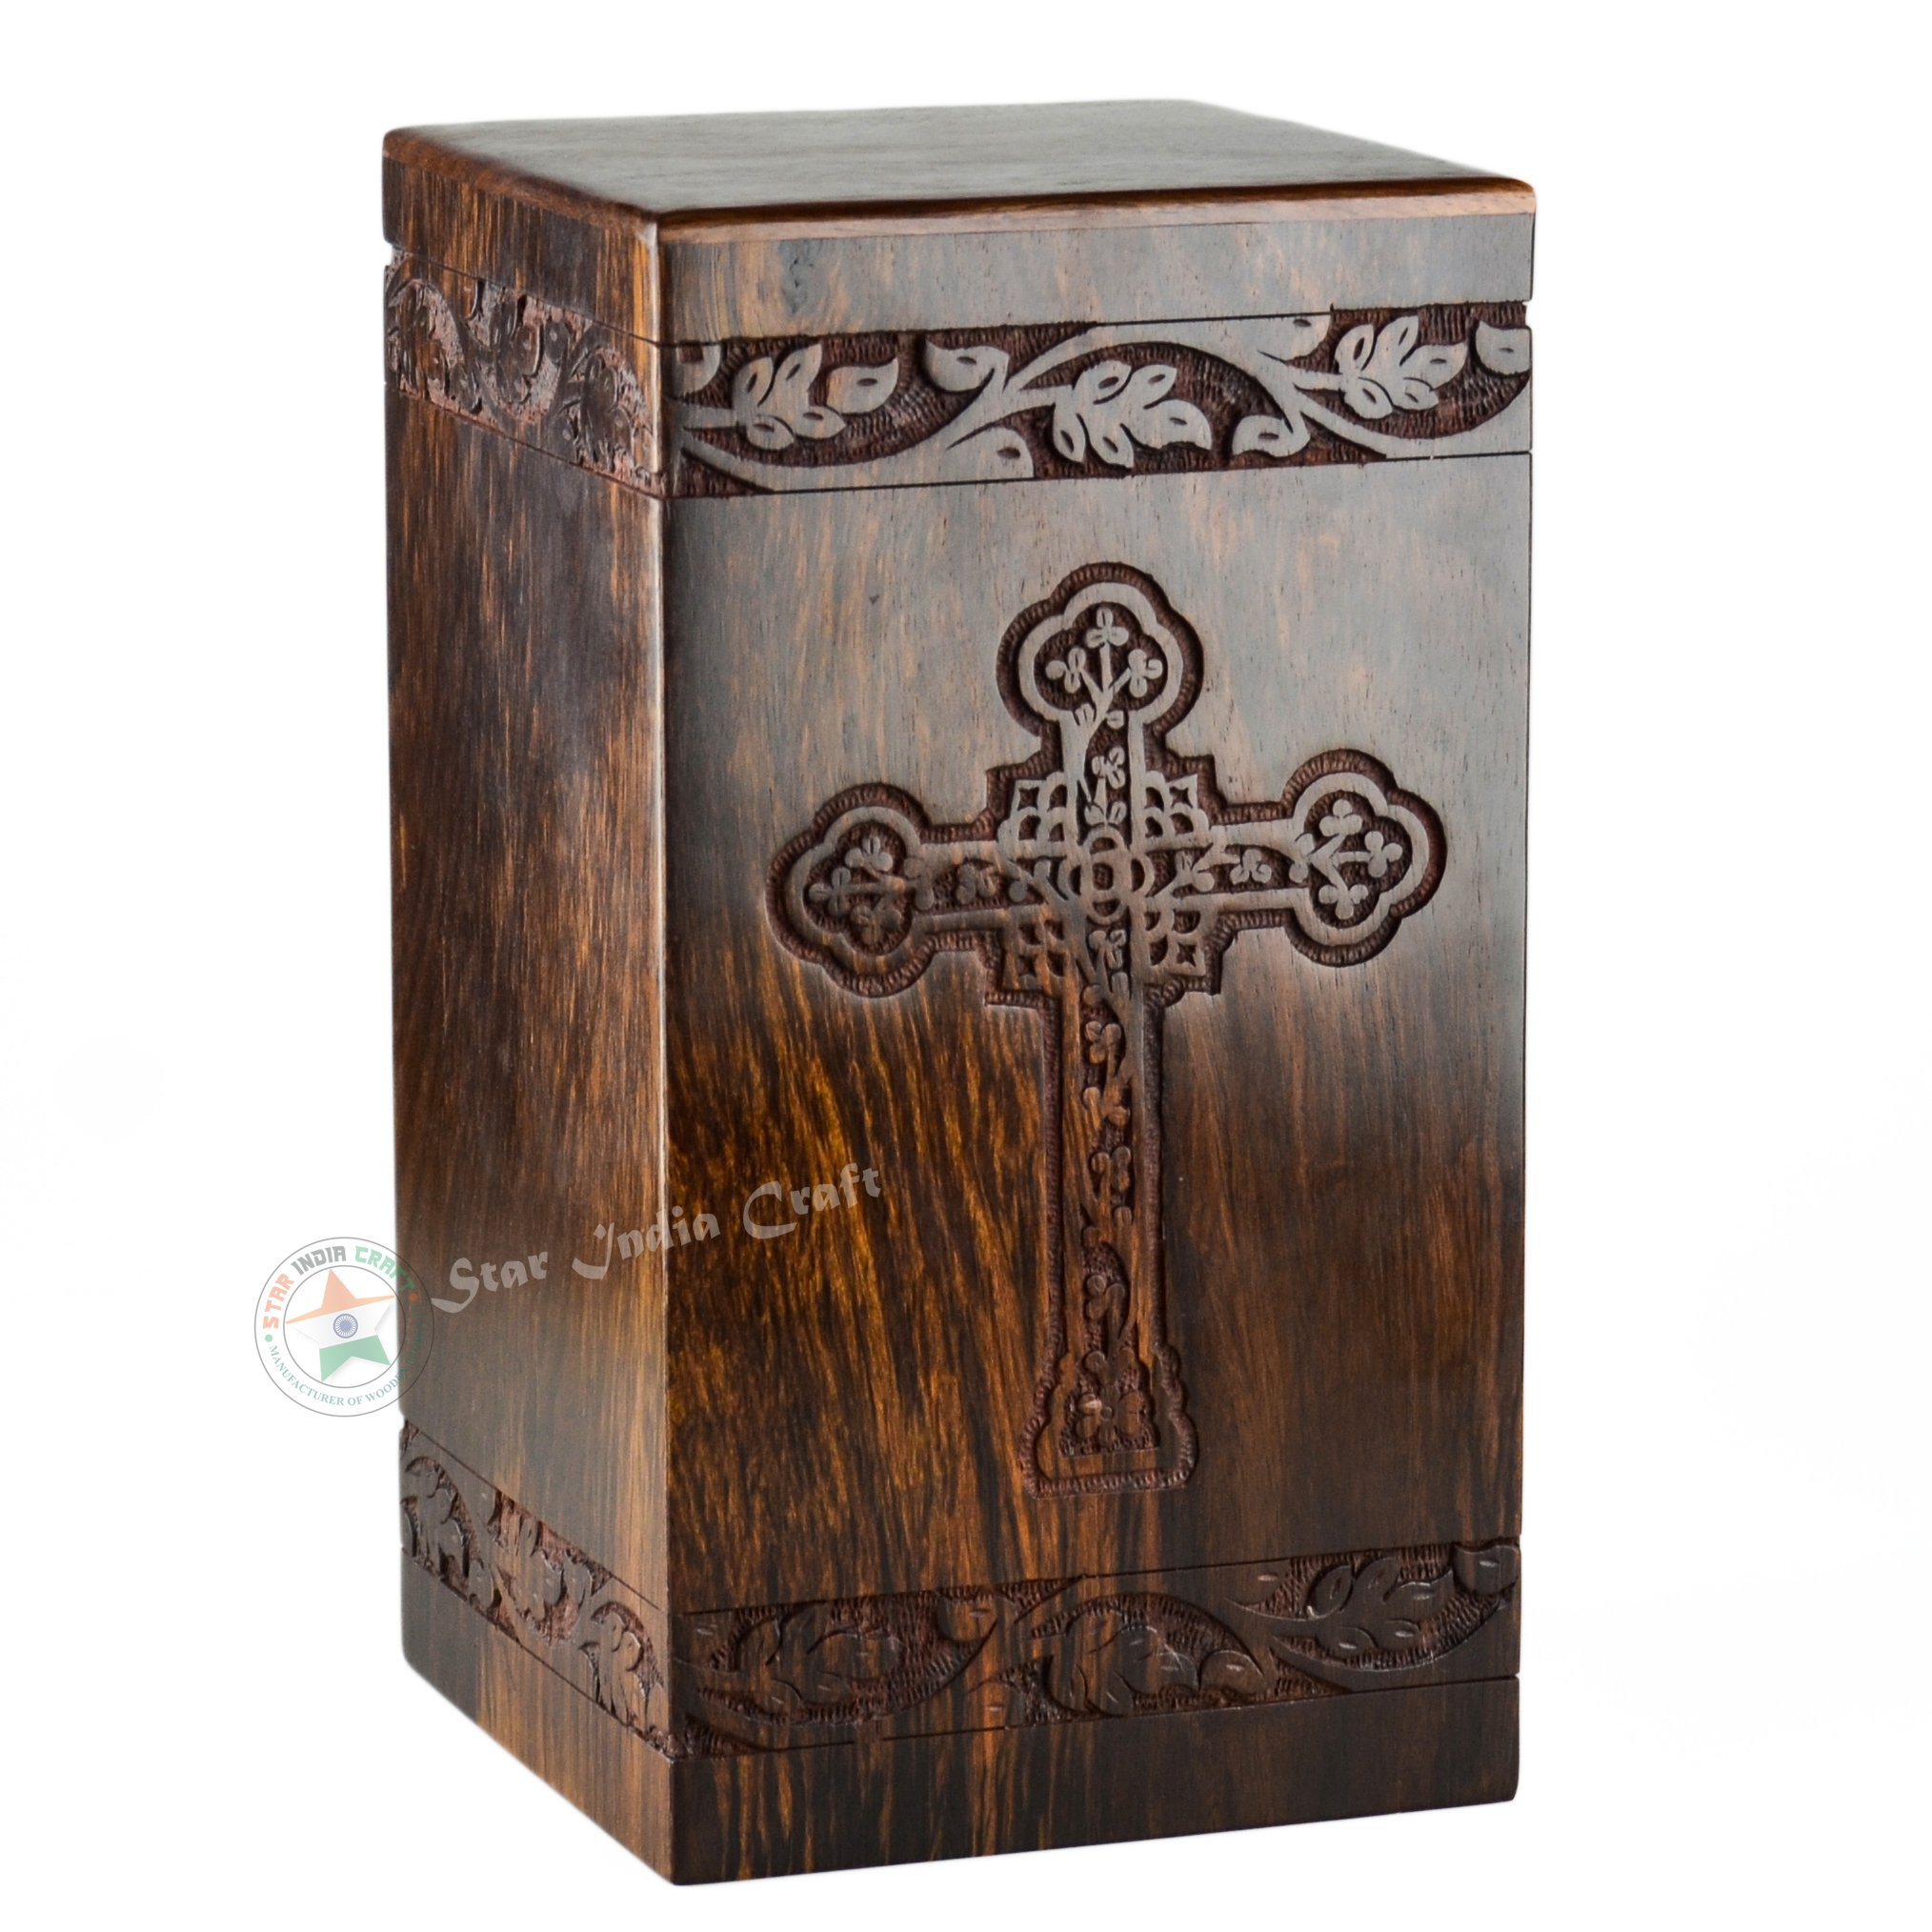 STAR INDIA CRAFT Cross Engraved Rosewood Urns for Human Ashes Adult By, Handmade Cremation Funeral Urn for Ashes,A perfect Burial Wooden Box for your Loved Ones (Cross-11, 11.25x6.25x6.25-250 Cu/In)